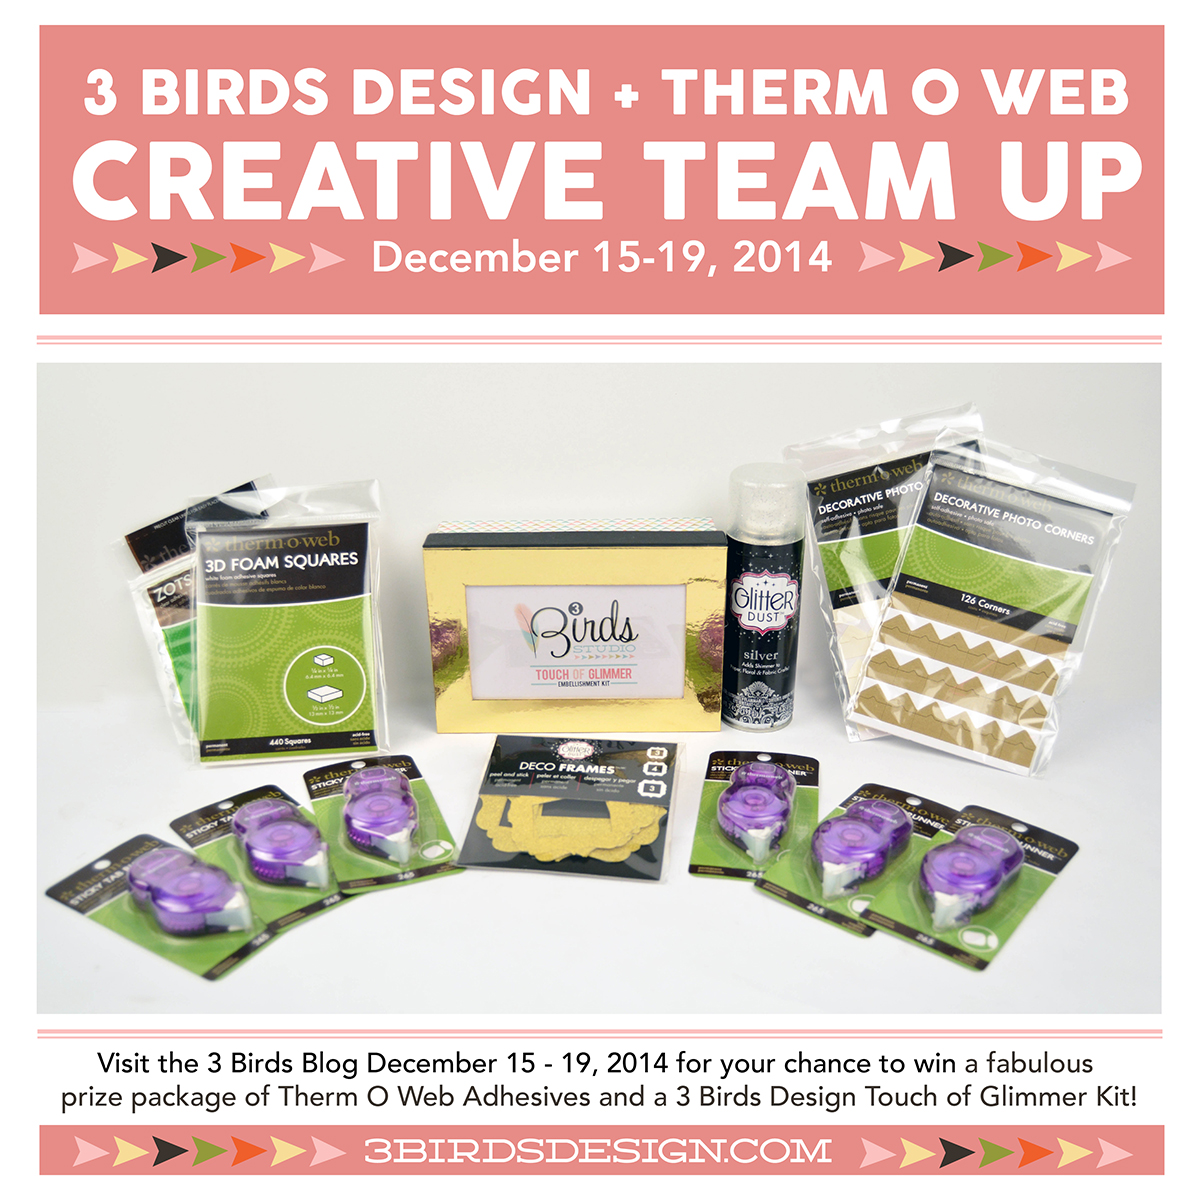 3 Birds Design and Therm O Web Creative Team Up